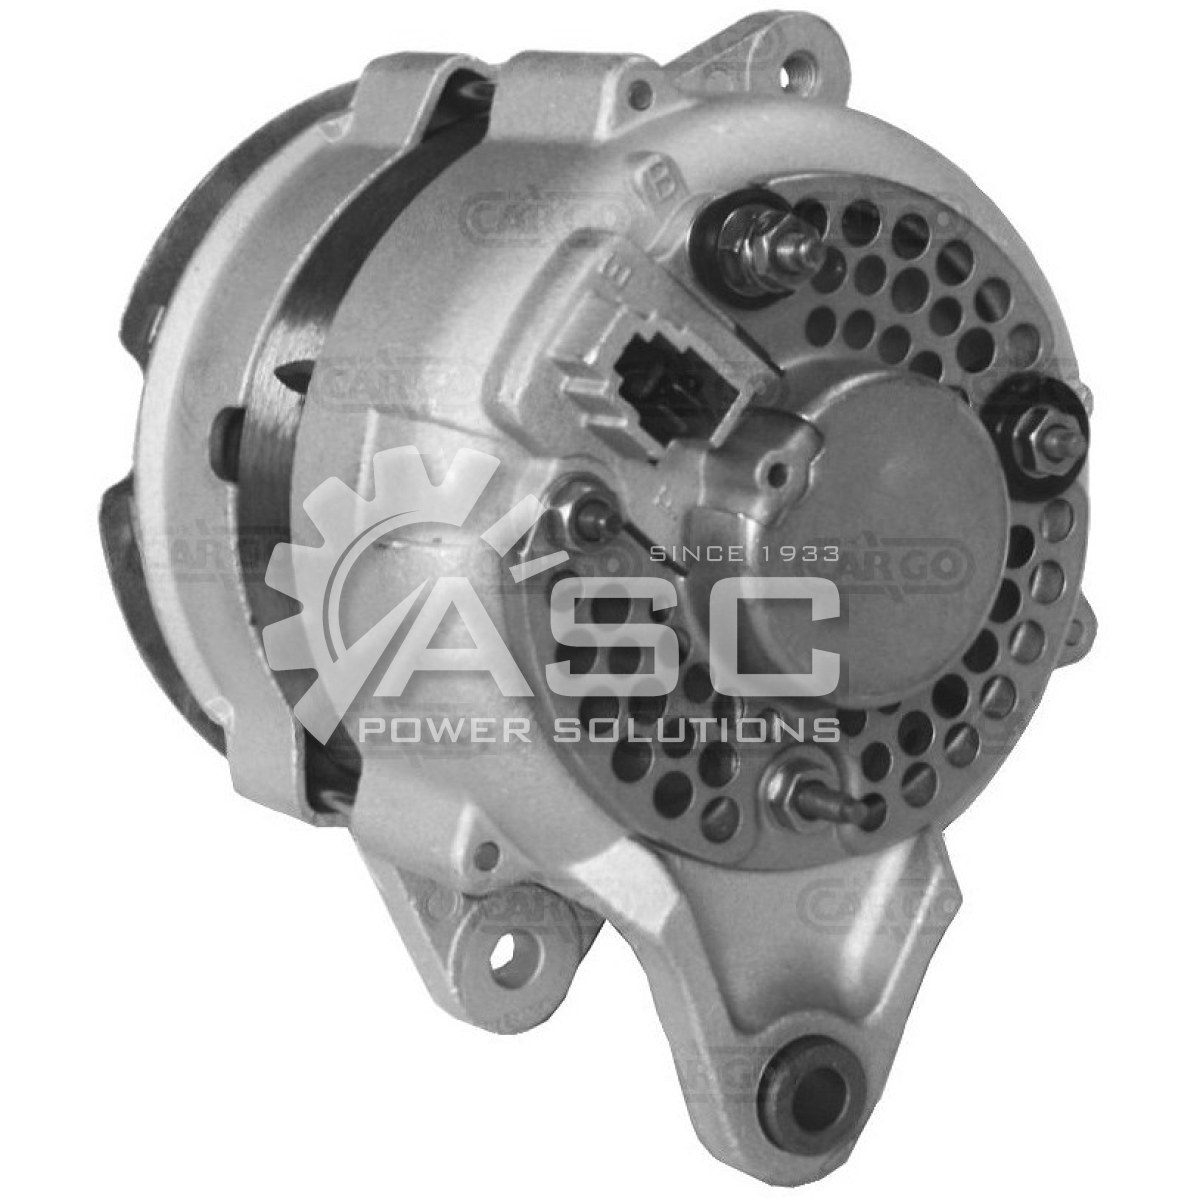 A521040_ASC, Alternator, 12V, 40 Amp, ER, EF, CW, DENSO, Reman